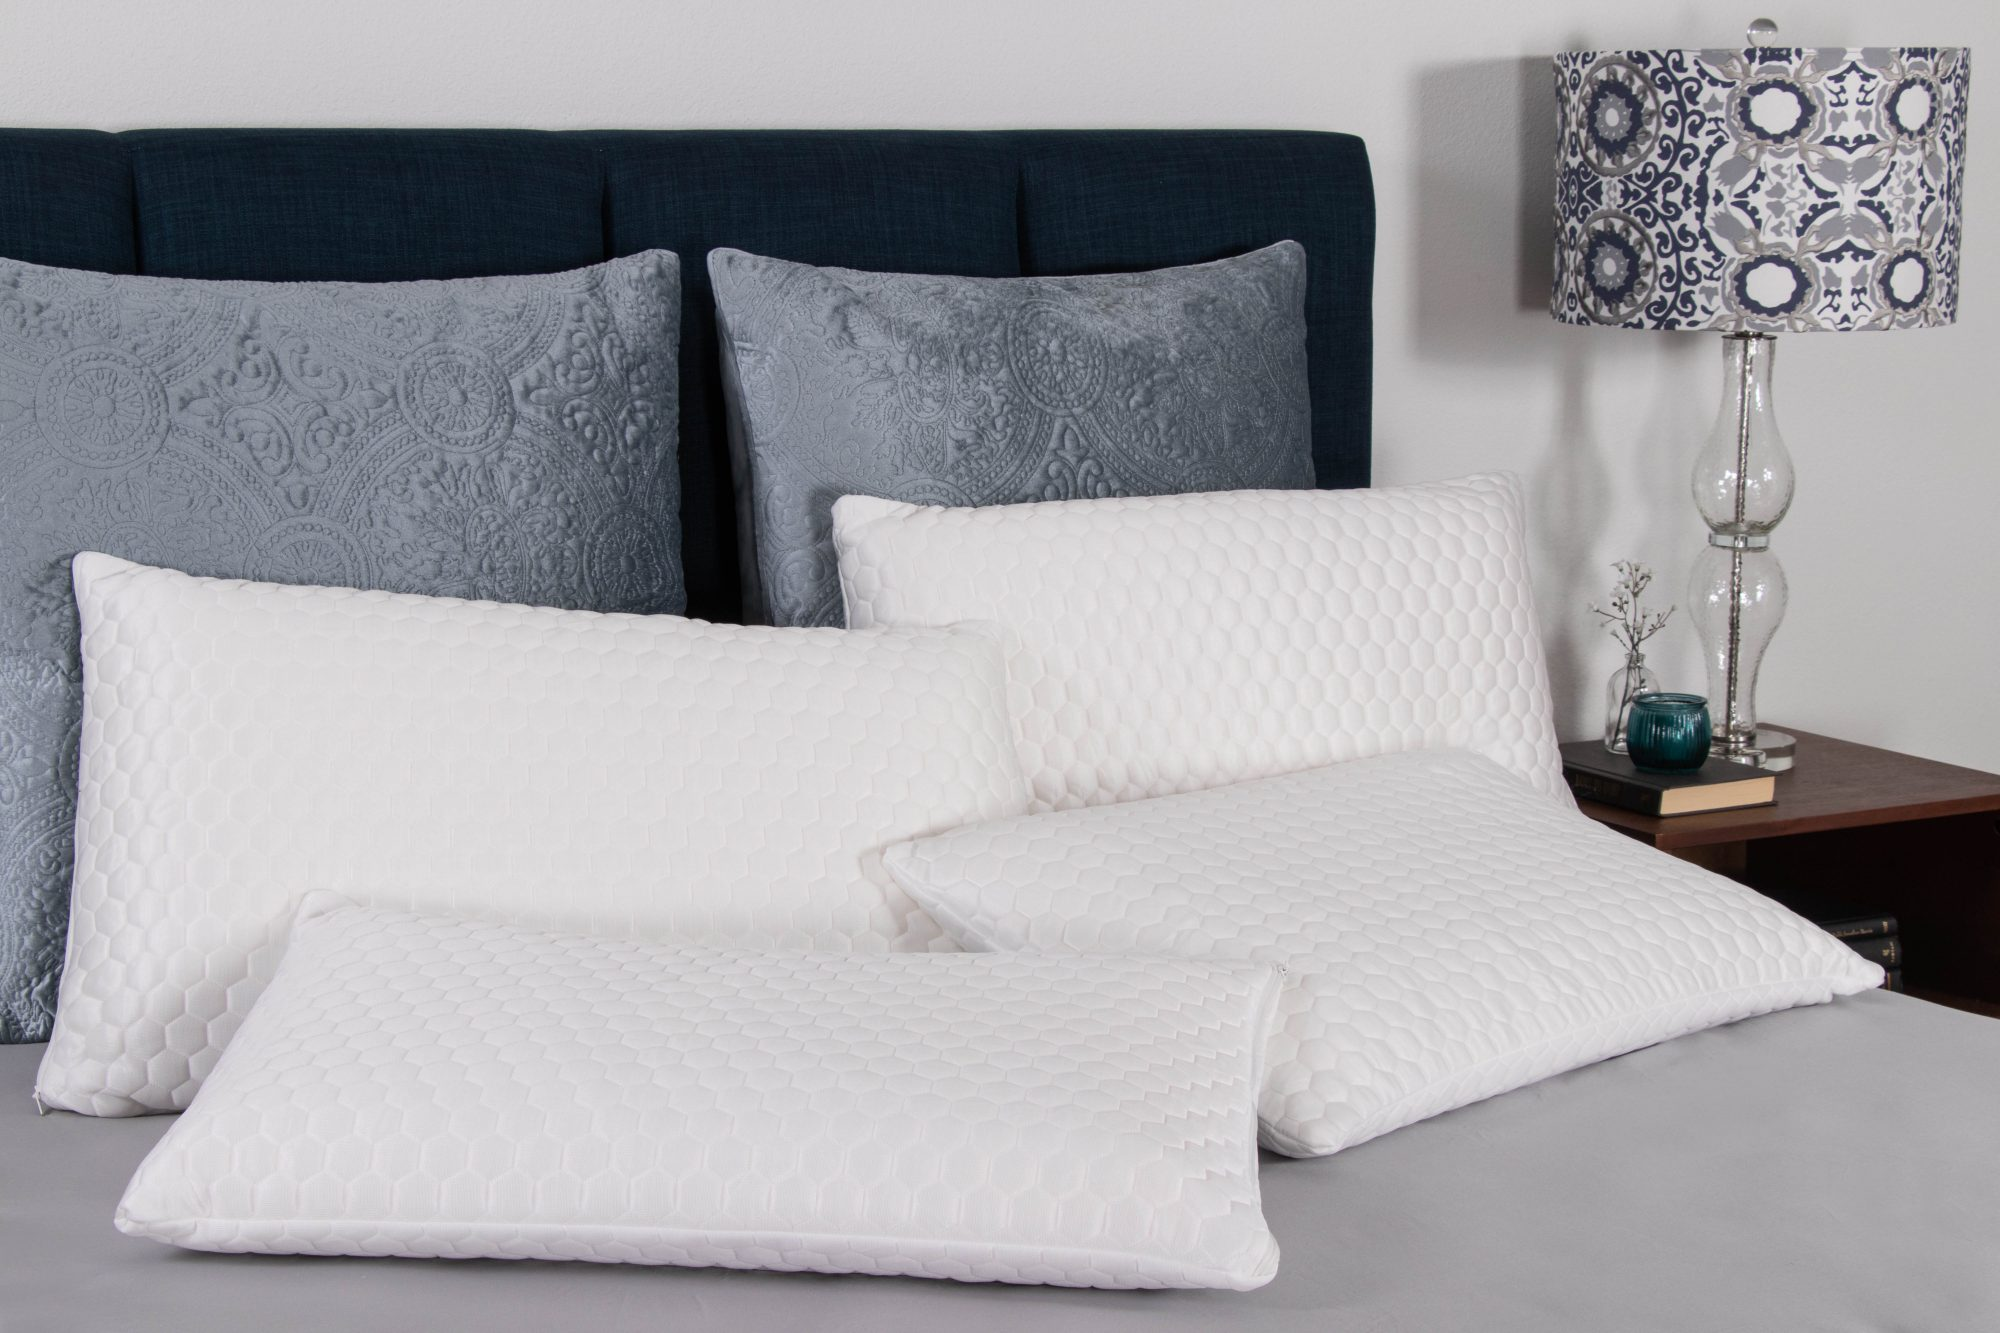 Brooklyn Bedding Luxury Cooling Pillow, from $129